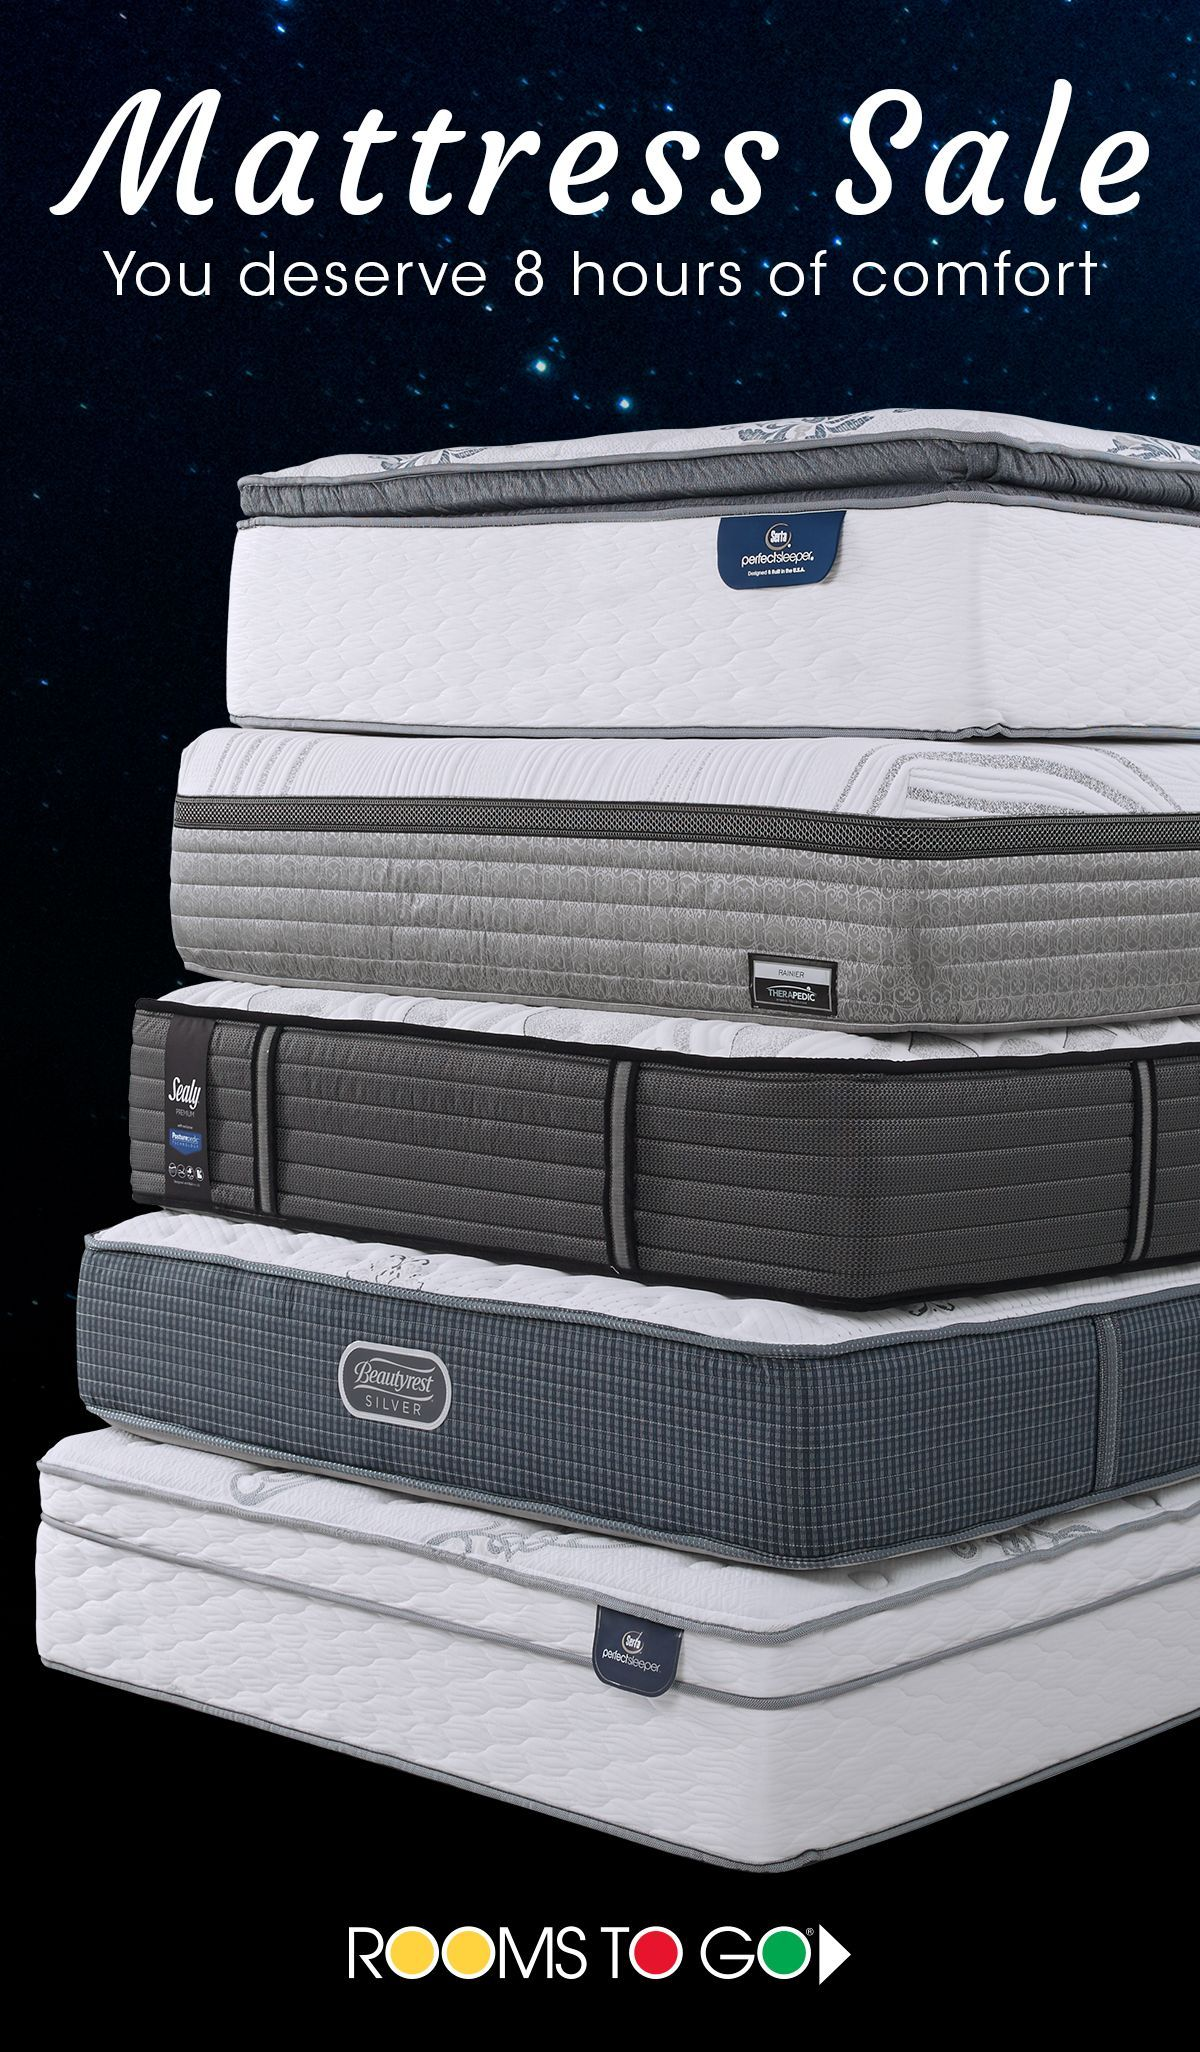 Find The Best Place To Lay Your Head Now During Our Mattress Save On Brands Like Sealy Serta Theic And More Only At Rooms